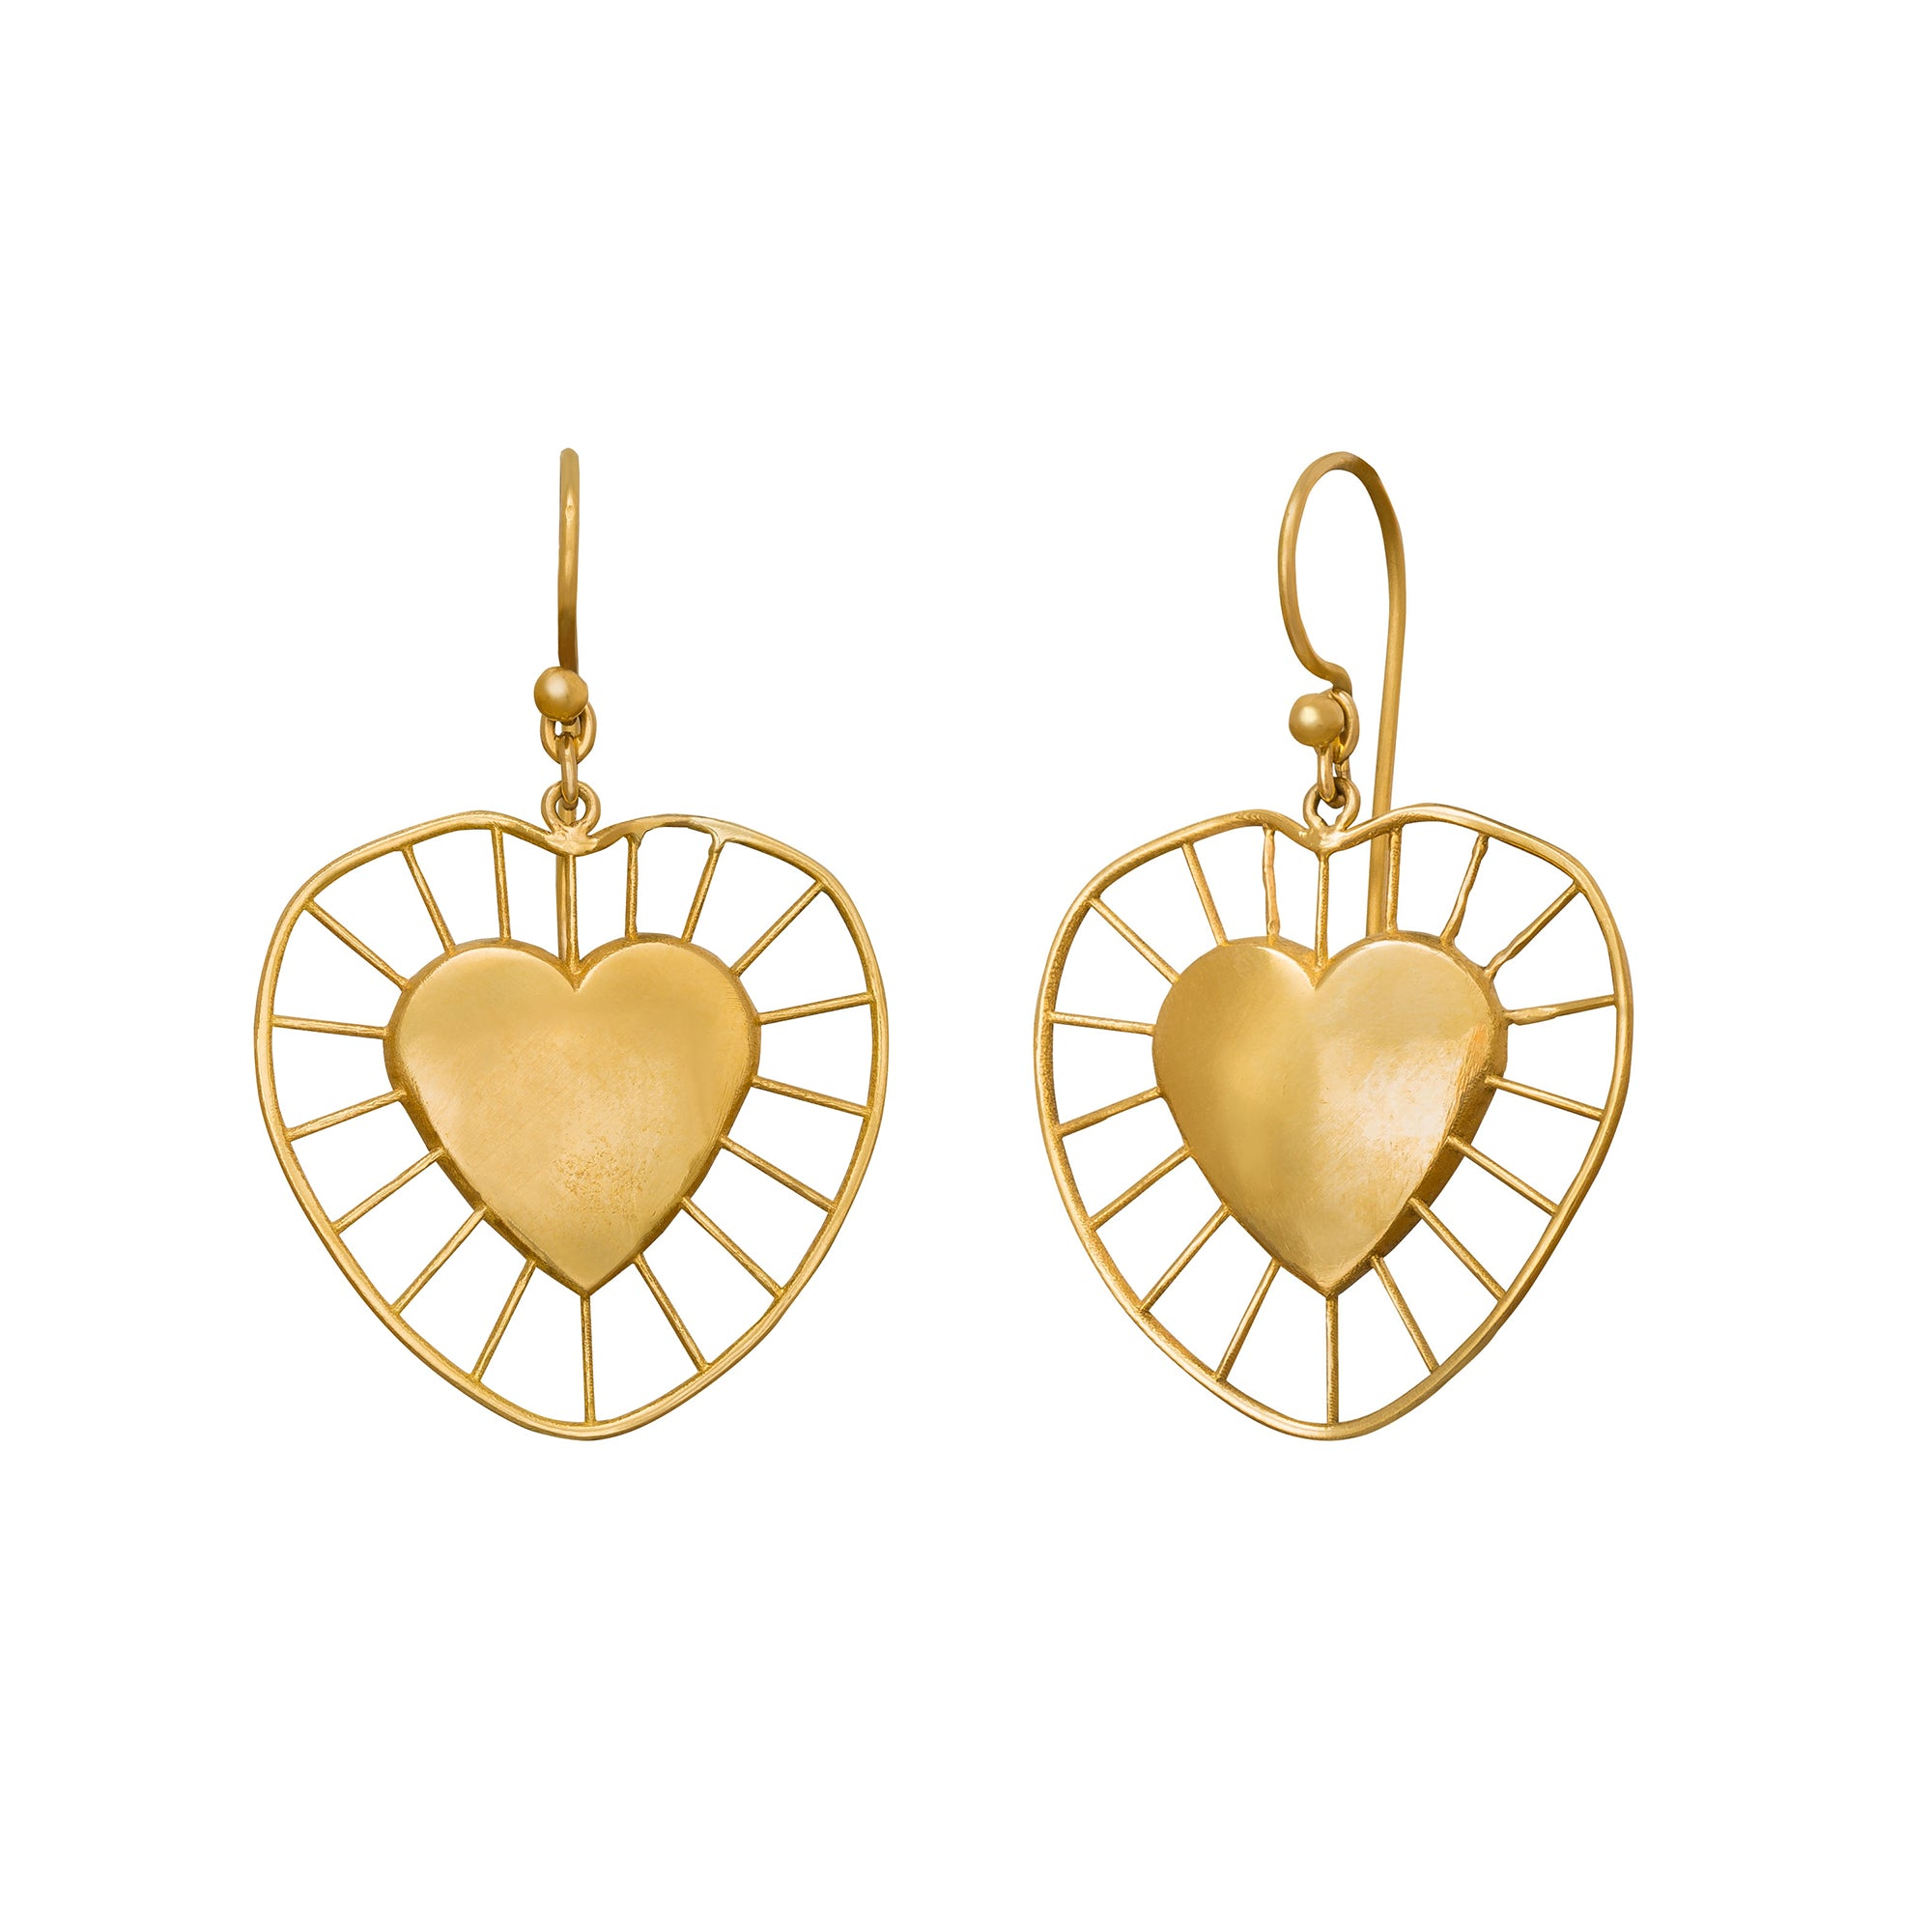 Small Radial Heart Drop Earrings - Christina Alexiou - Earrings | Broken English Jewelry